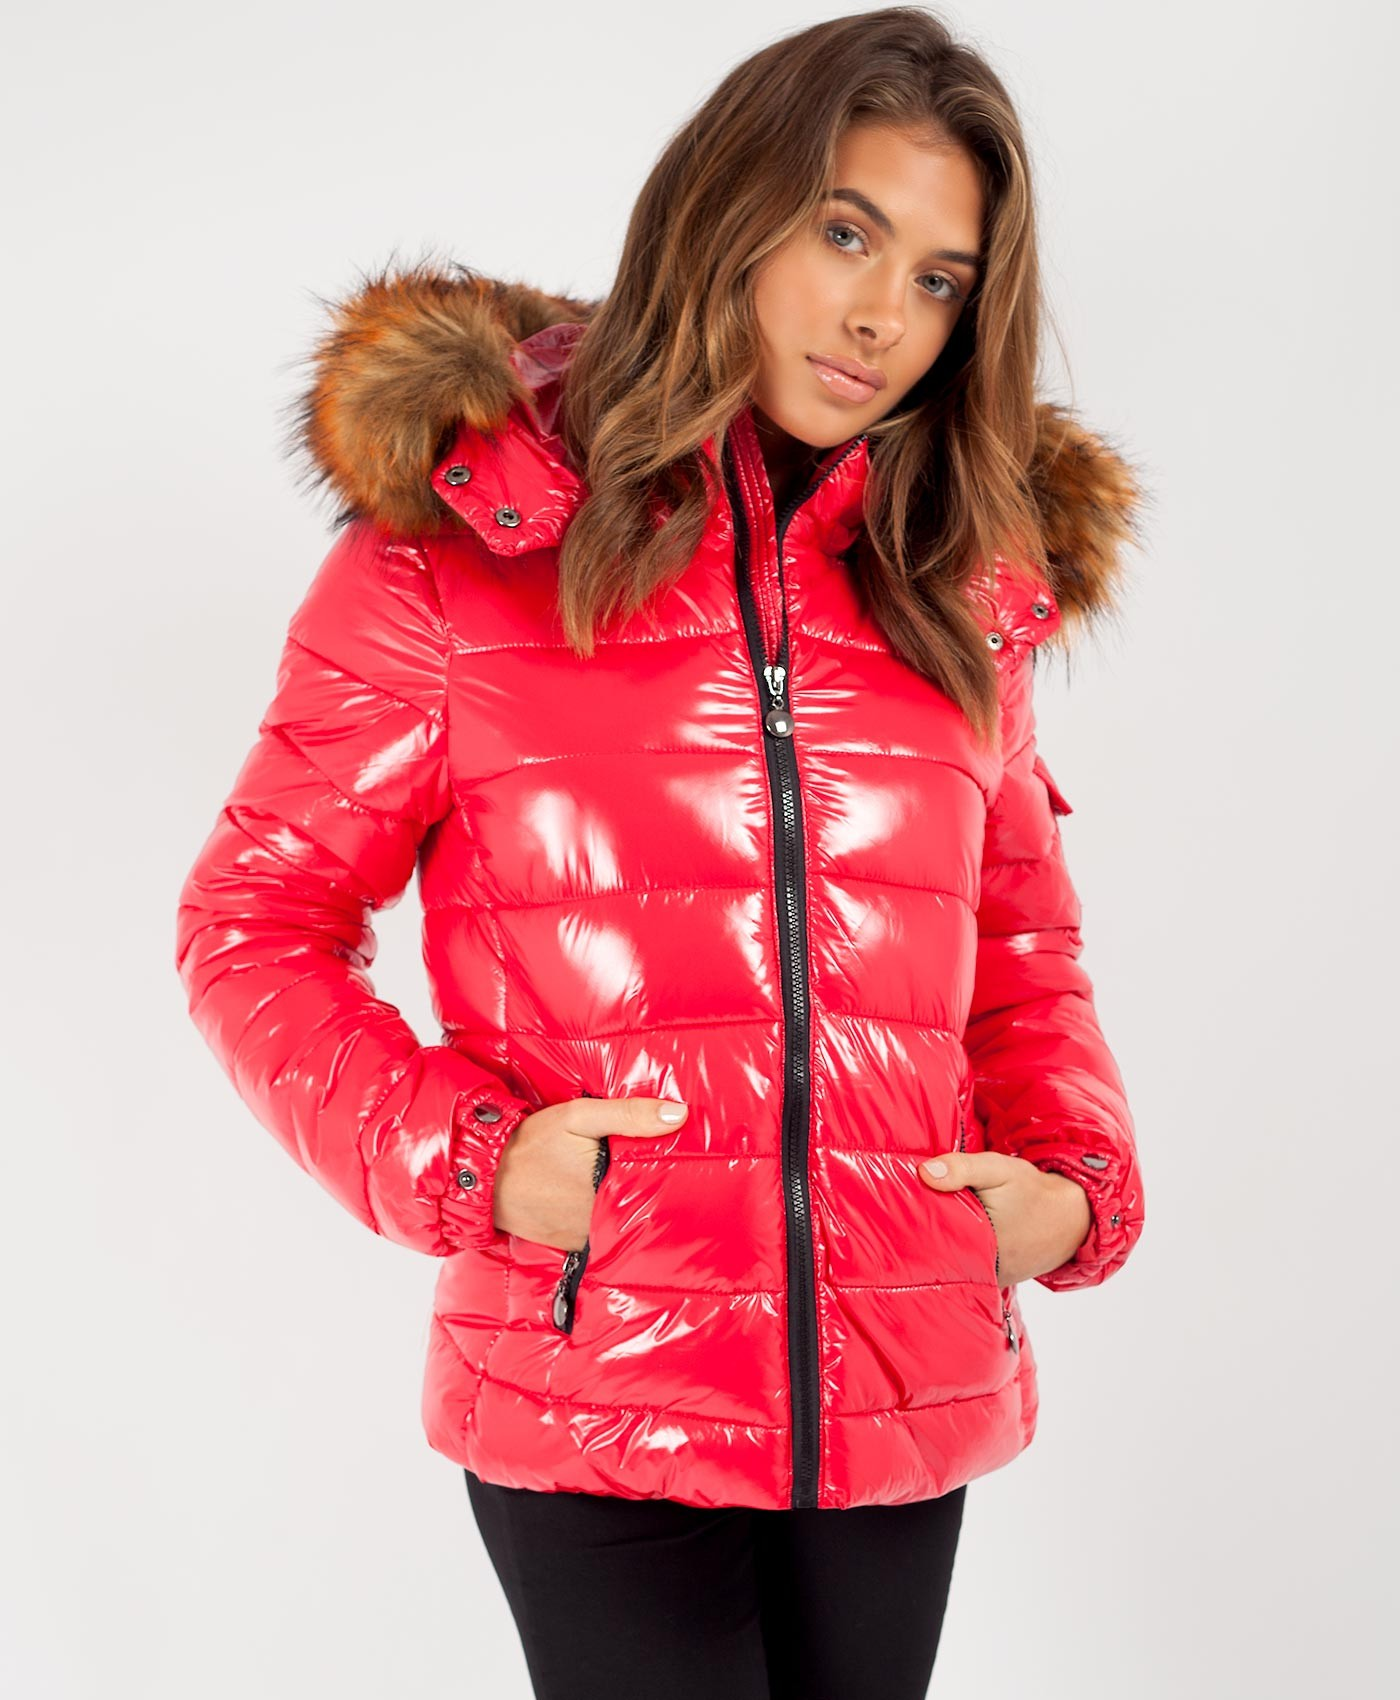 Red-Wet-Look-Shiny-Chunky-Faux-Fur-Hood-Jacket-2